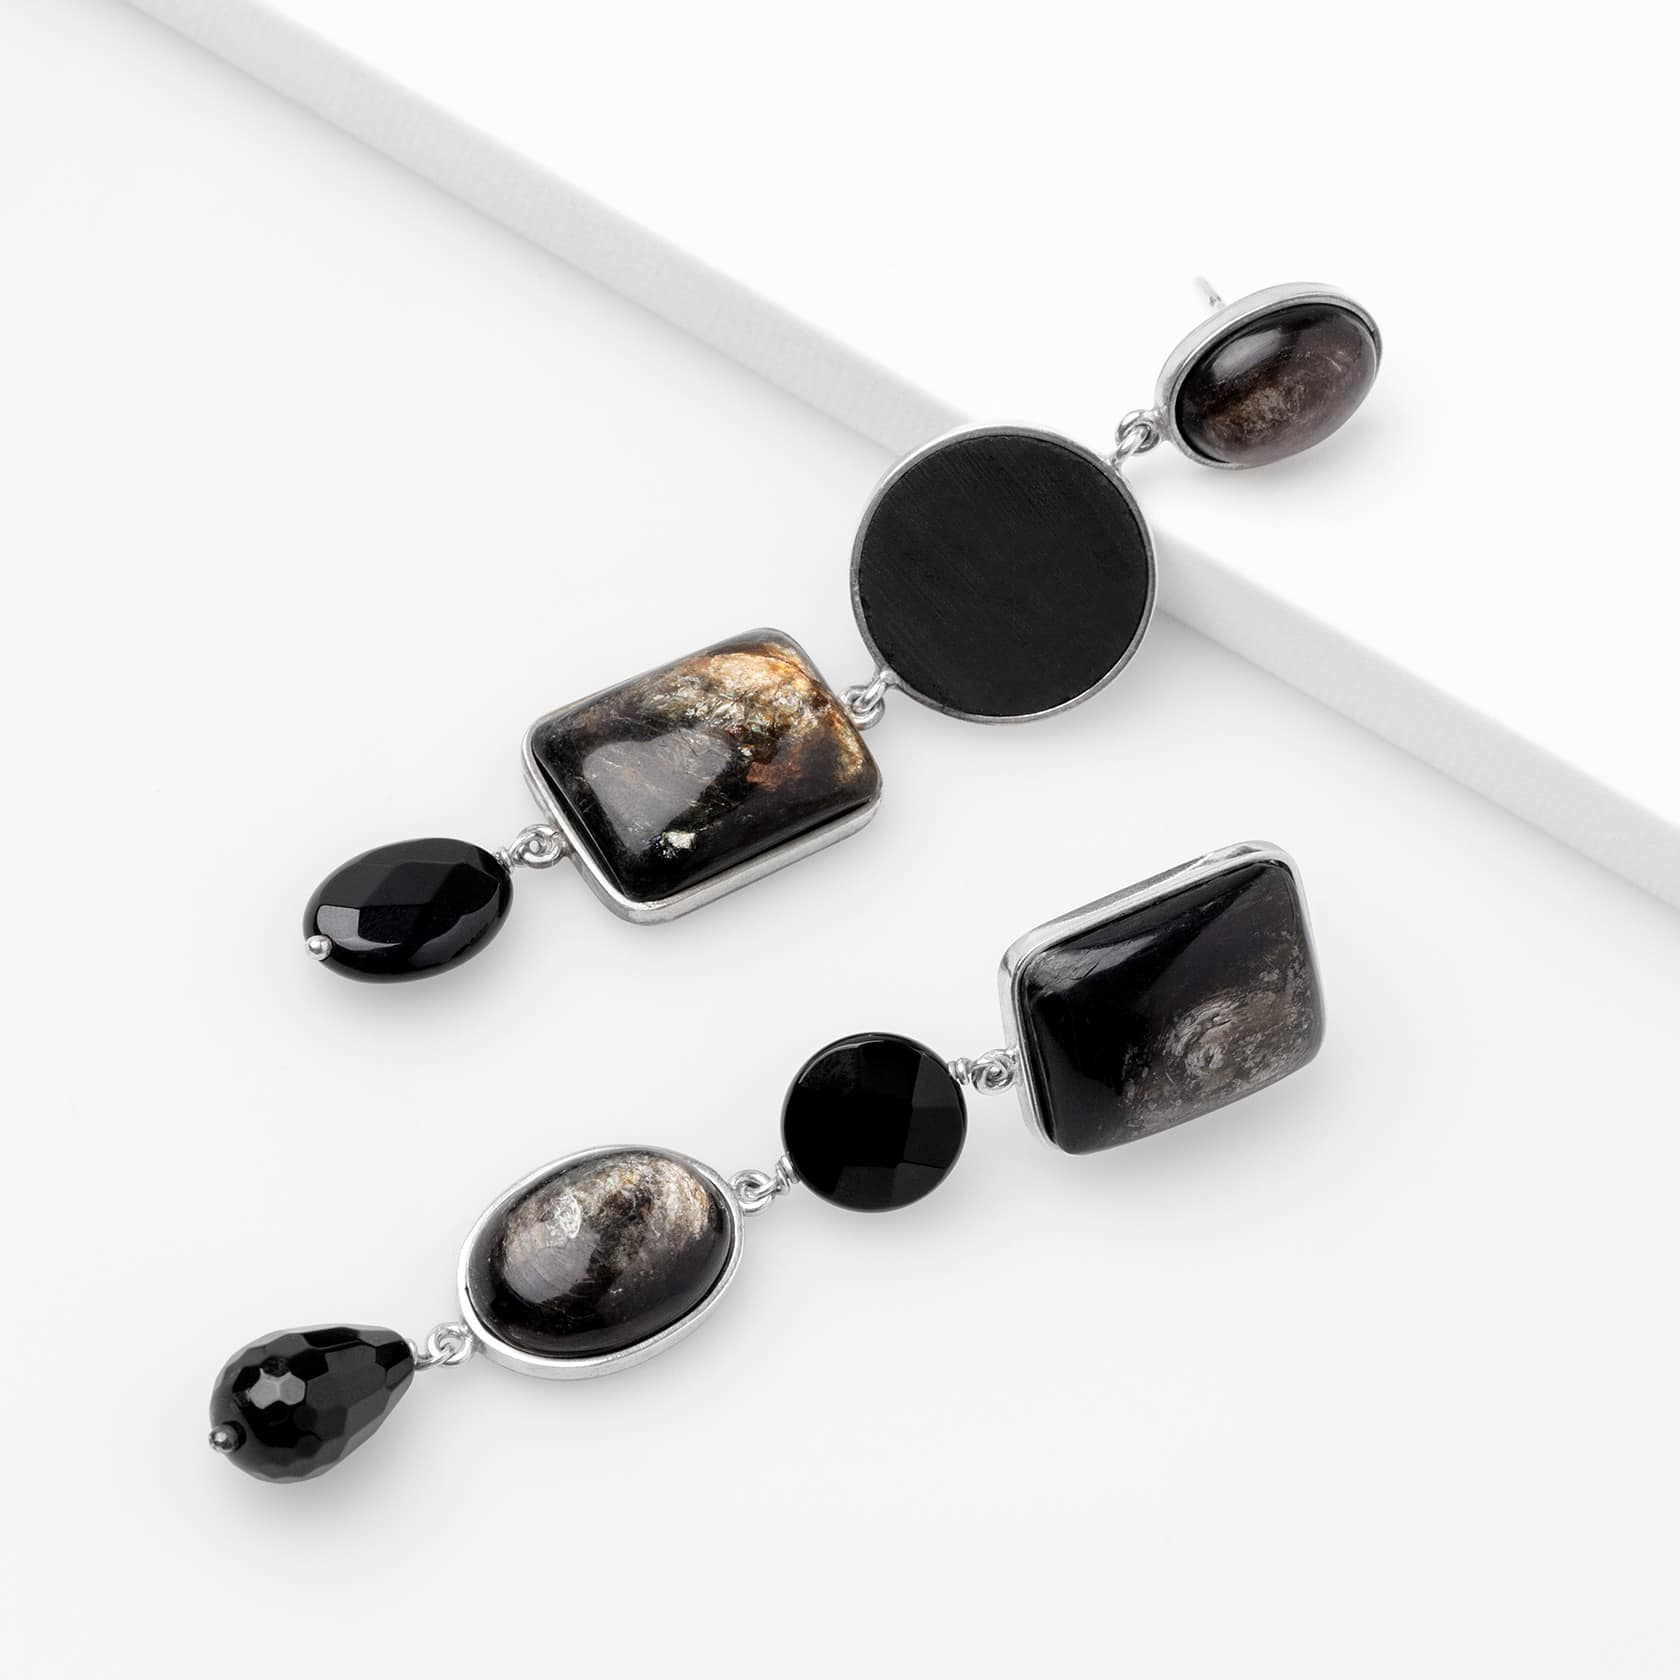 Shungite and onyx earrings marybola